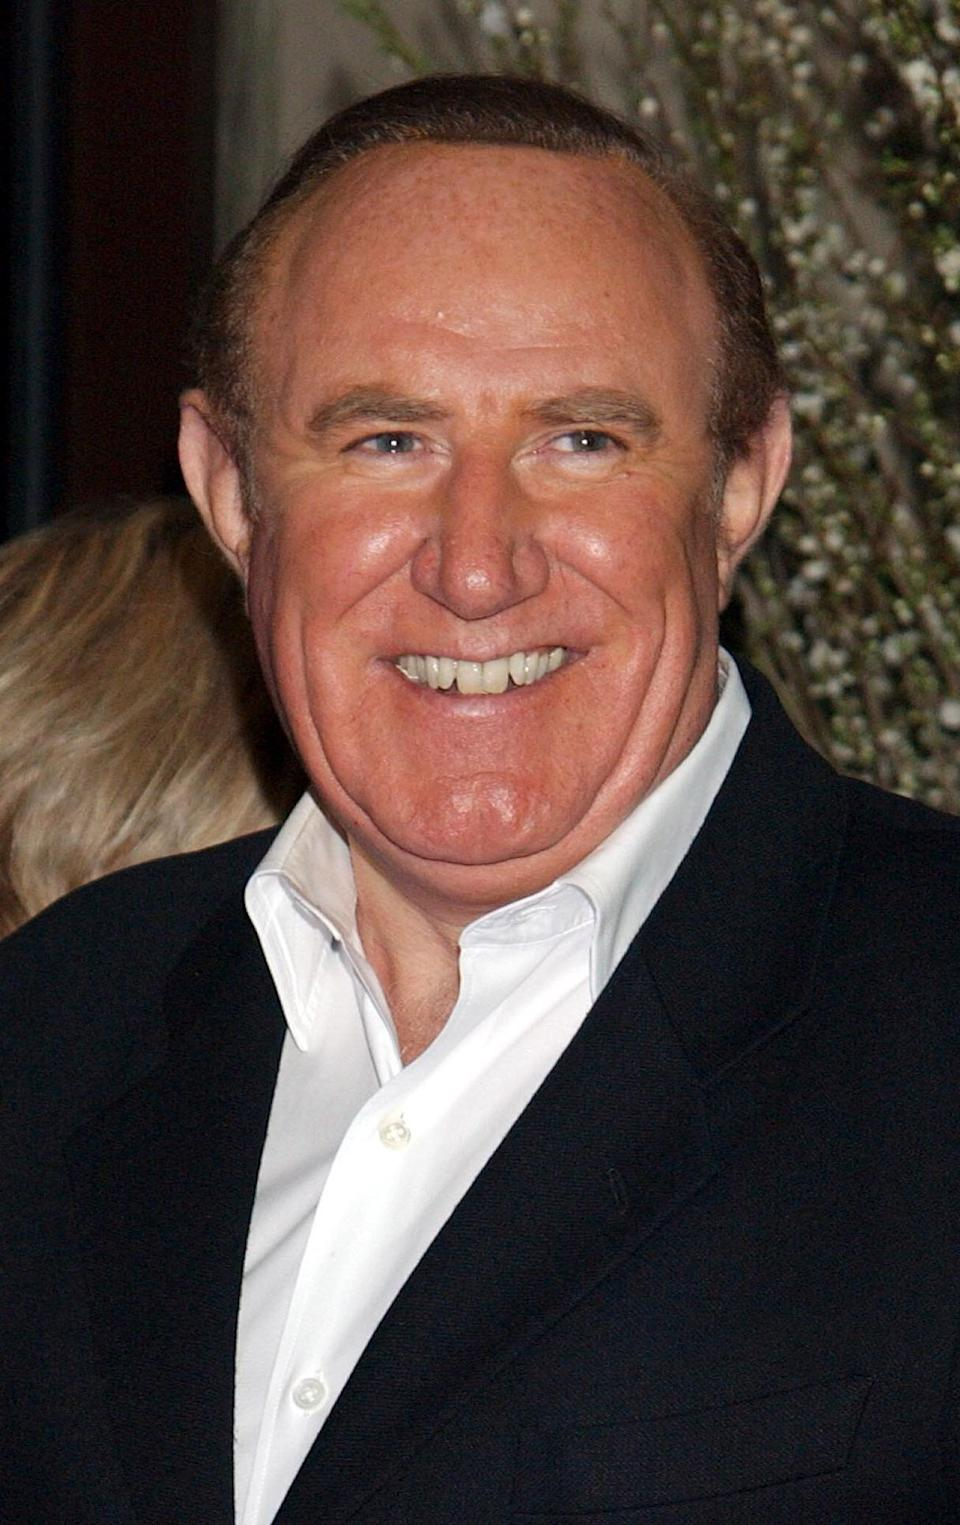 Andrew Neil will serve as chair of GB News as well as presenting his own show on the network (Photo: Yui Mok - PA Images via Getty Images)